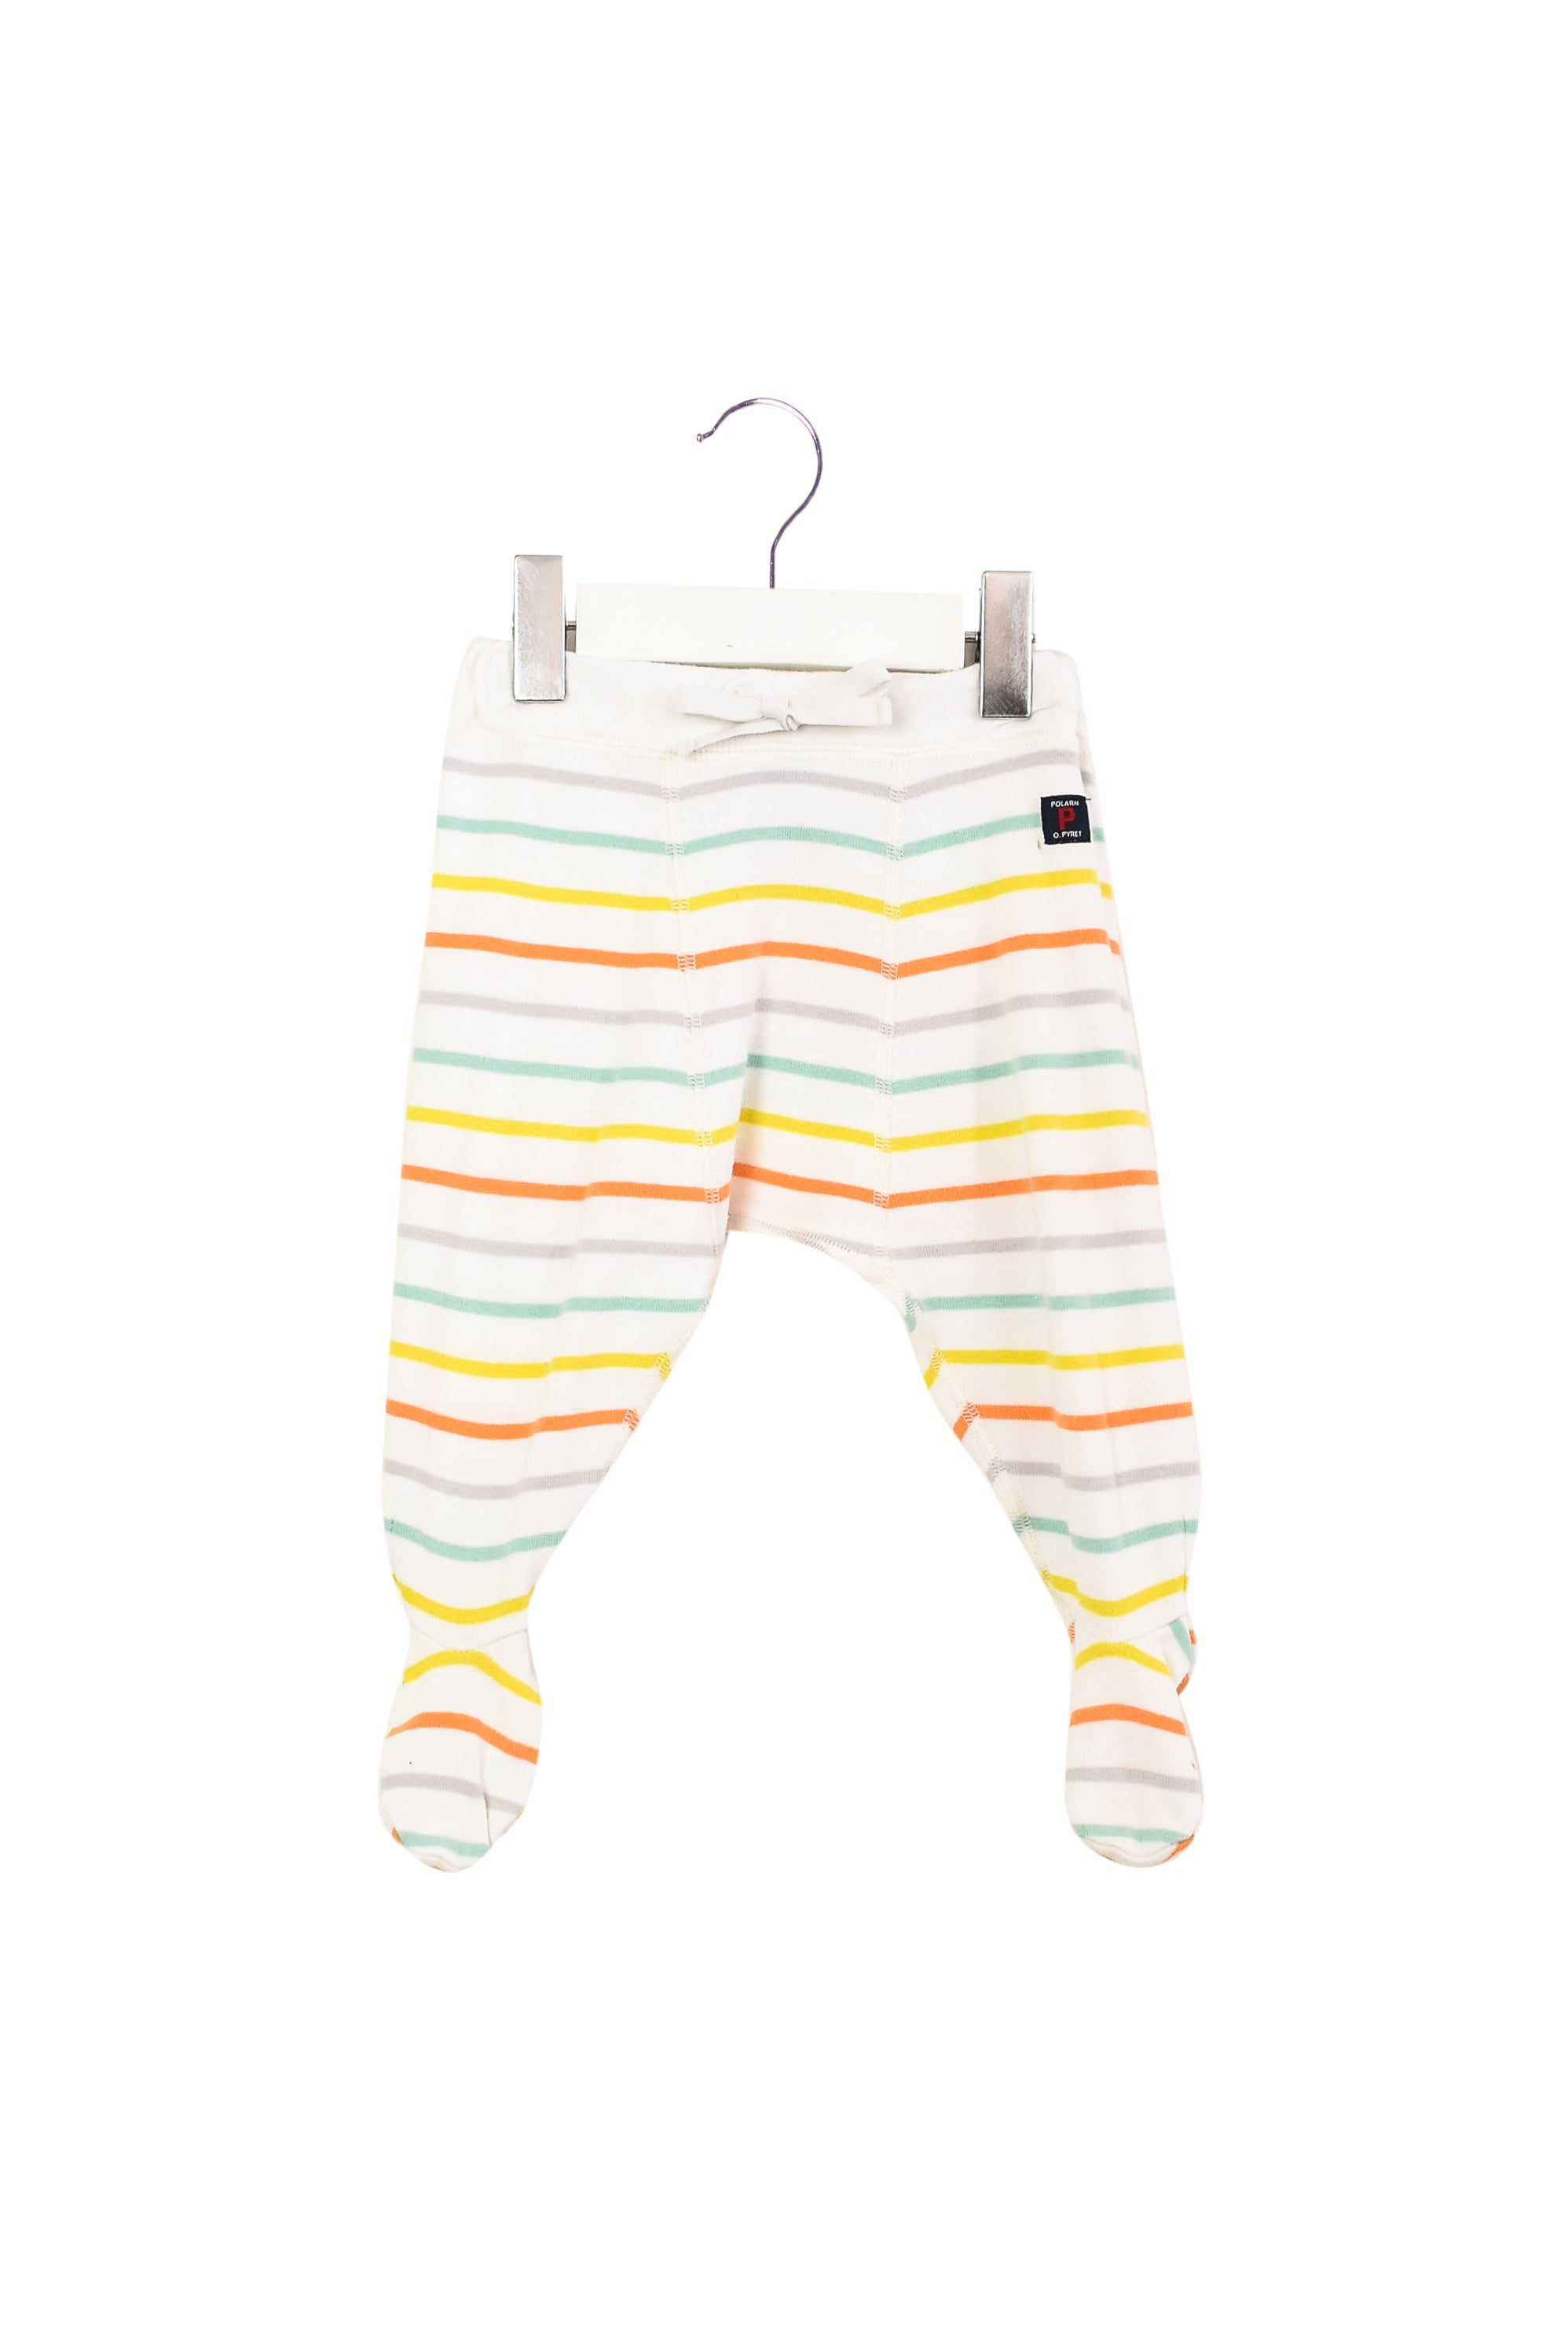 10008341 Polarn O. Pyret Baby~Pants 4-6M at Retykle